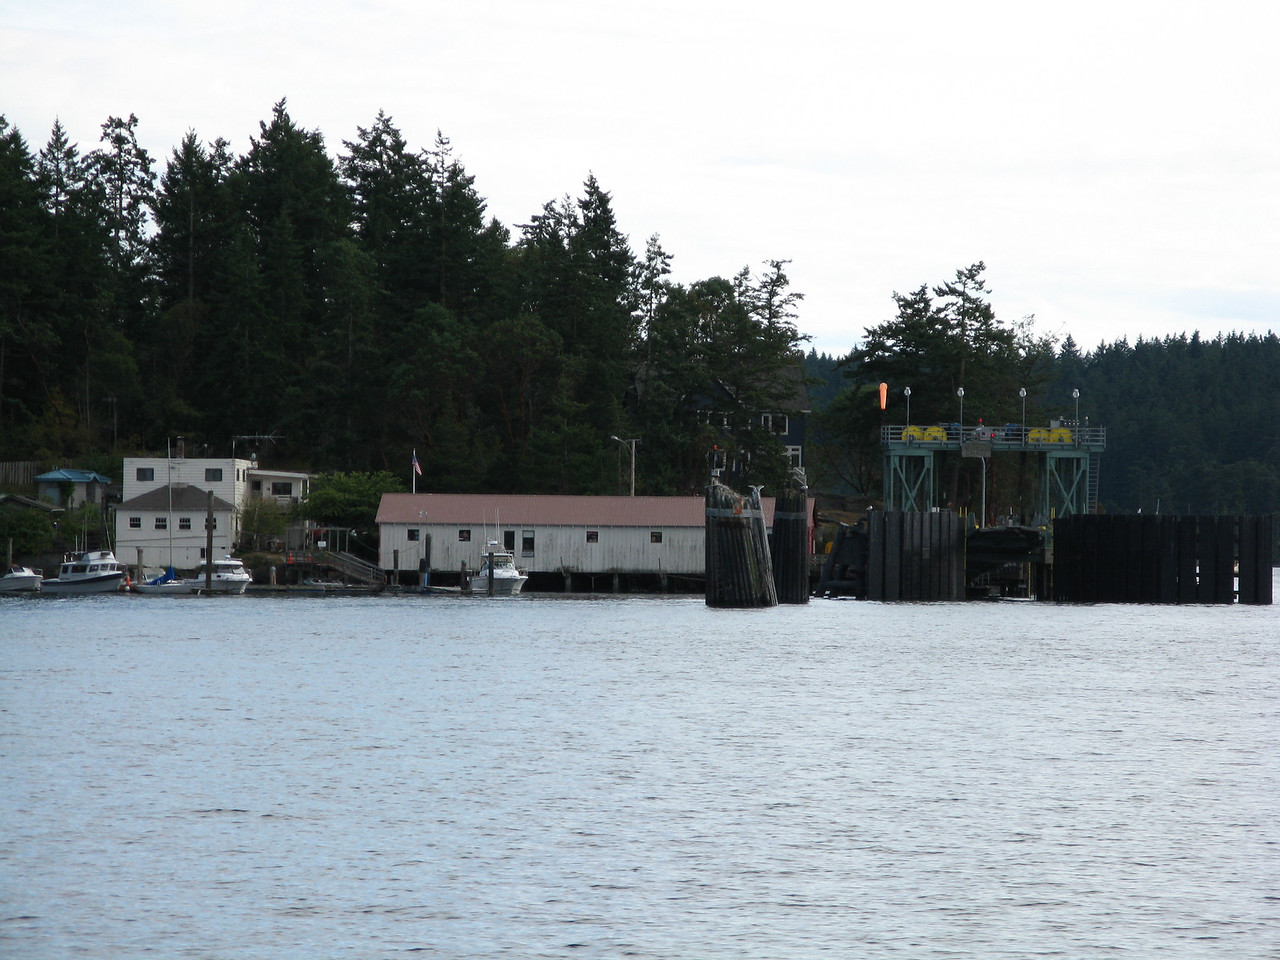 The ferry landing at Shaw Island, which is on the north side of the island and the view is south from the charter boat.